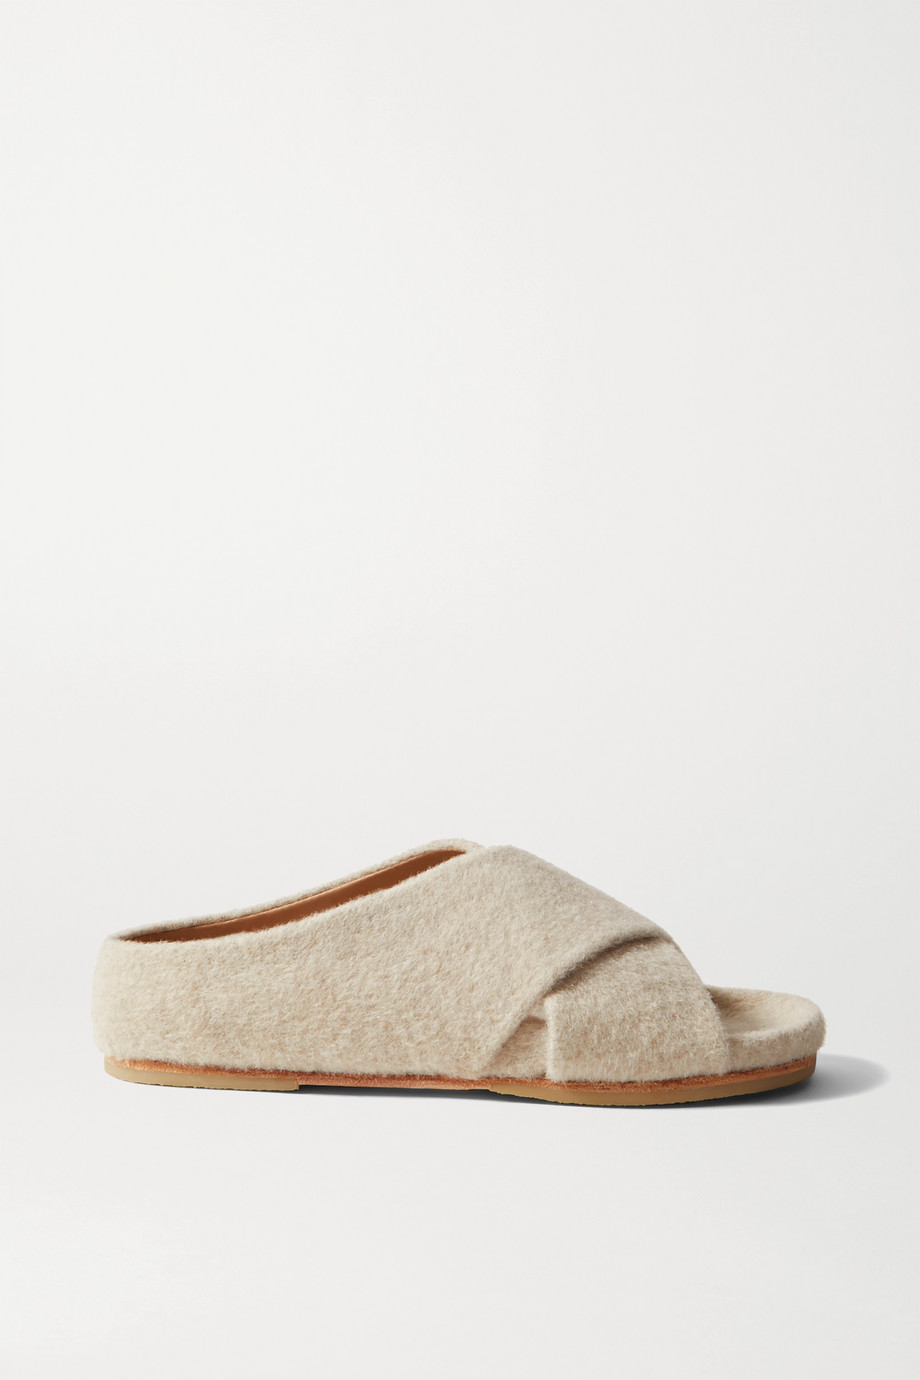 Lauren Manoogian Cross alpaca and wool-blend slides